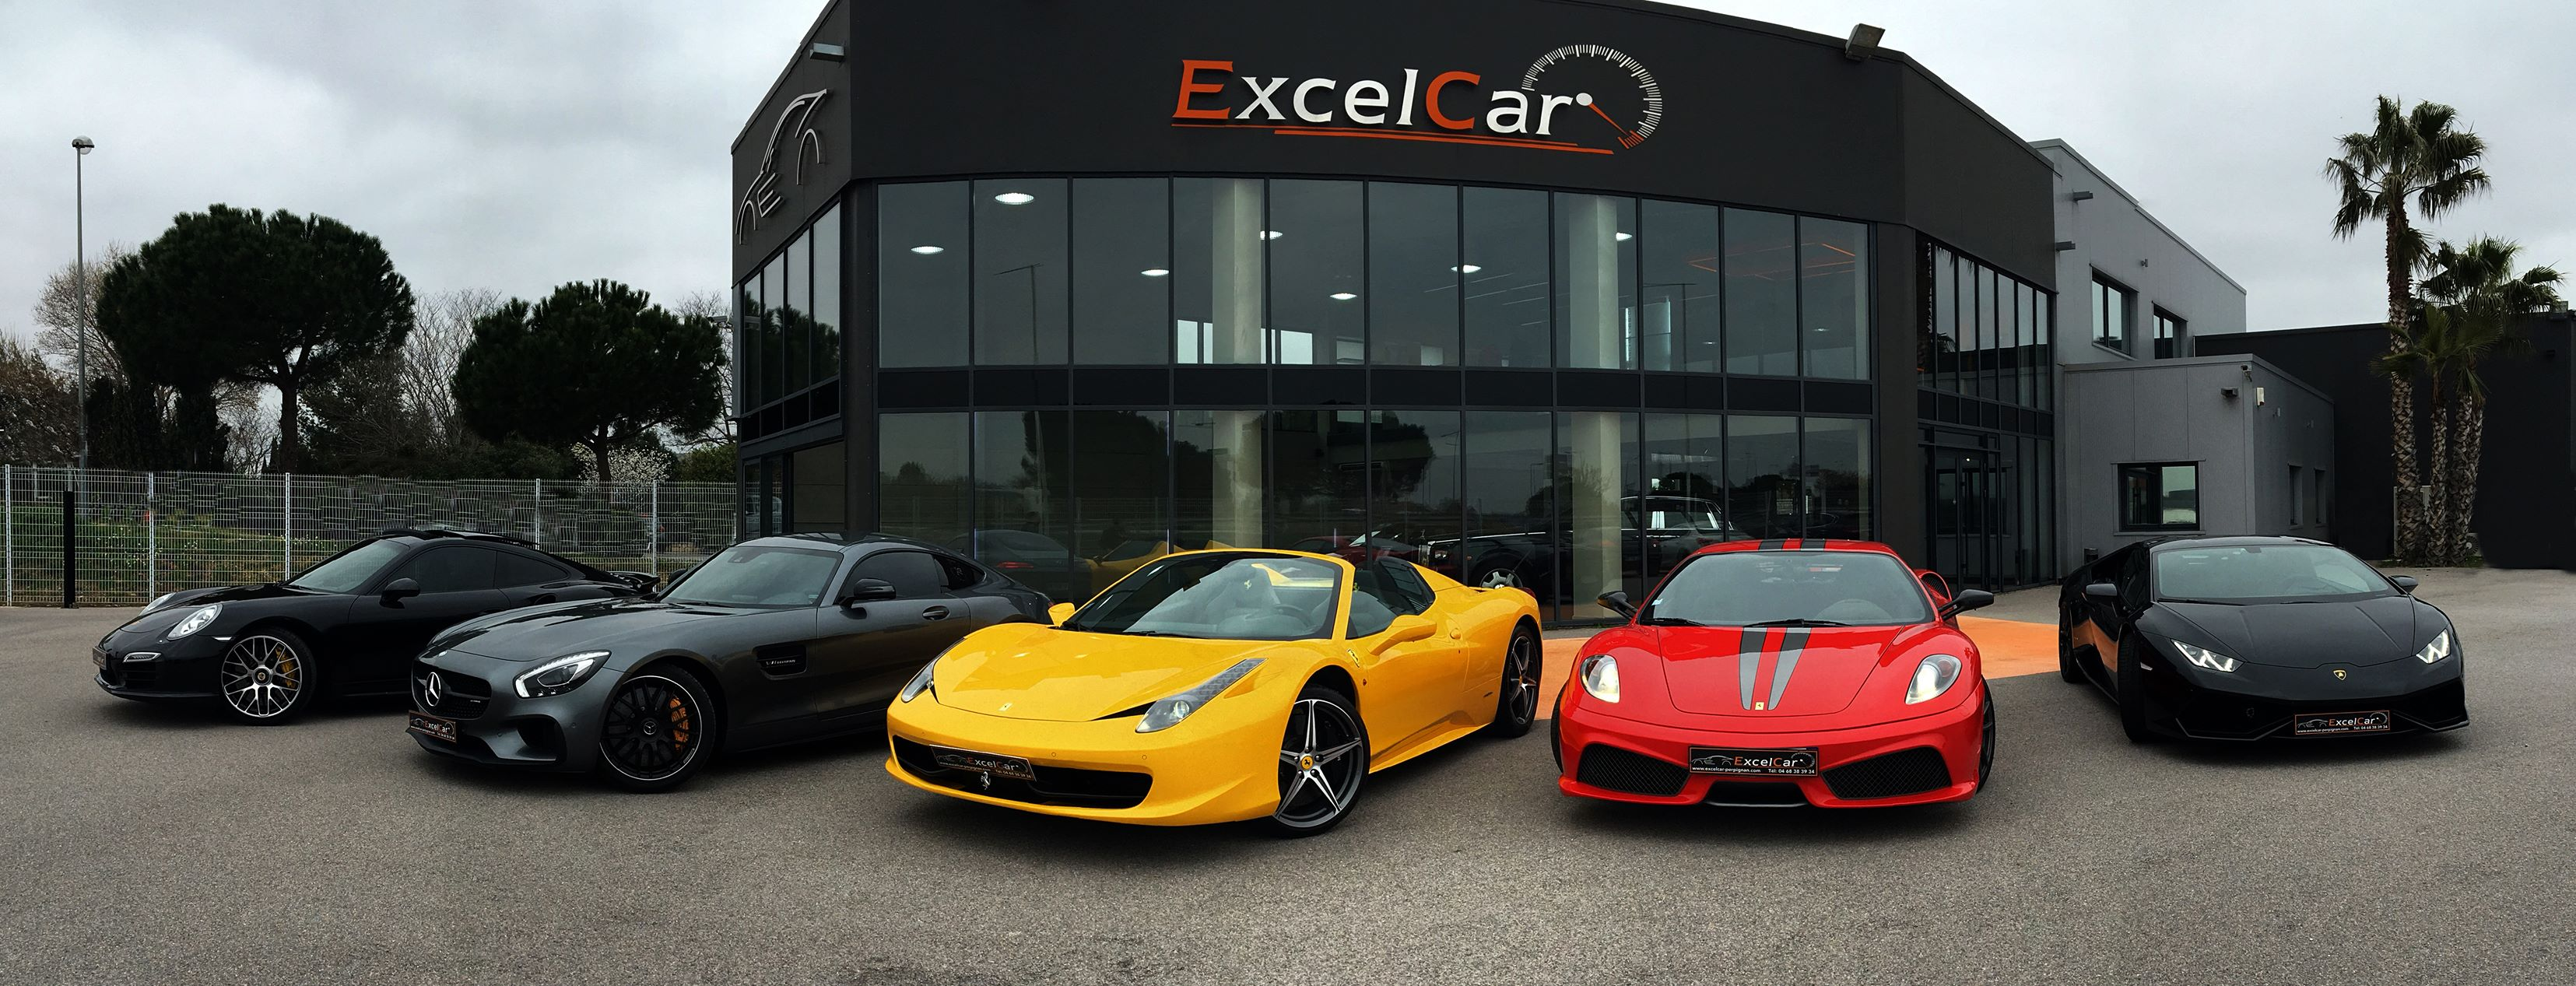 Excel car hummer perpignan voiture occasion rivesaltes for Garage la belle auto